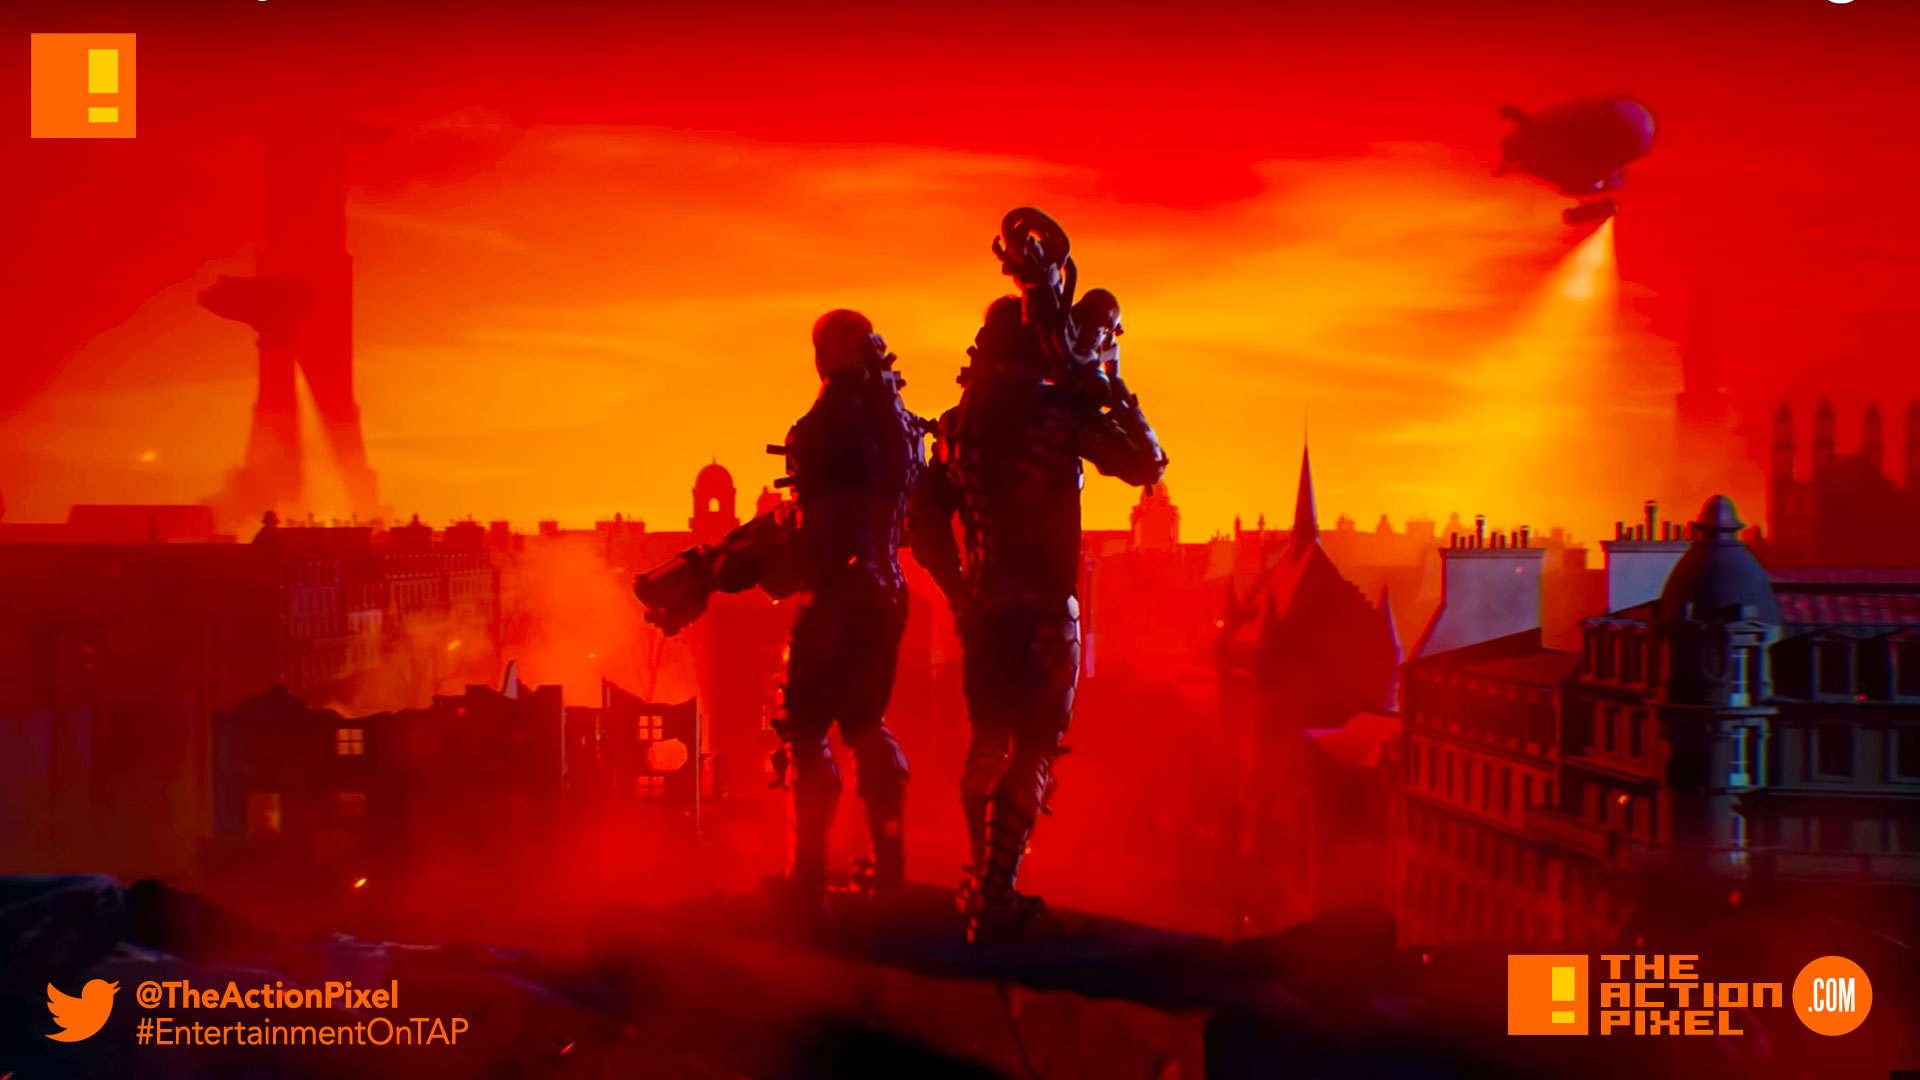 wolfenstein Youngblood, wolfenstein, bethesda, the action pixel, entertainment on tap,